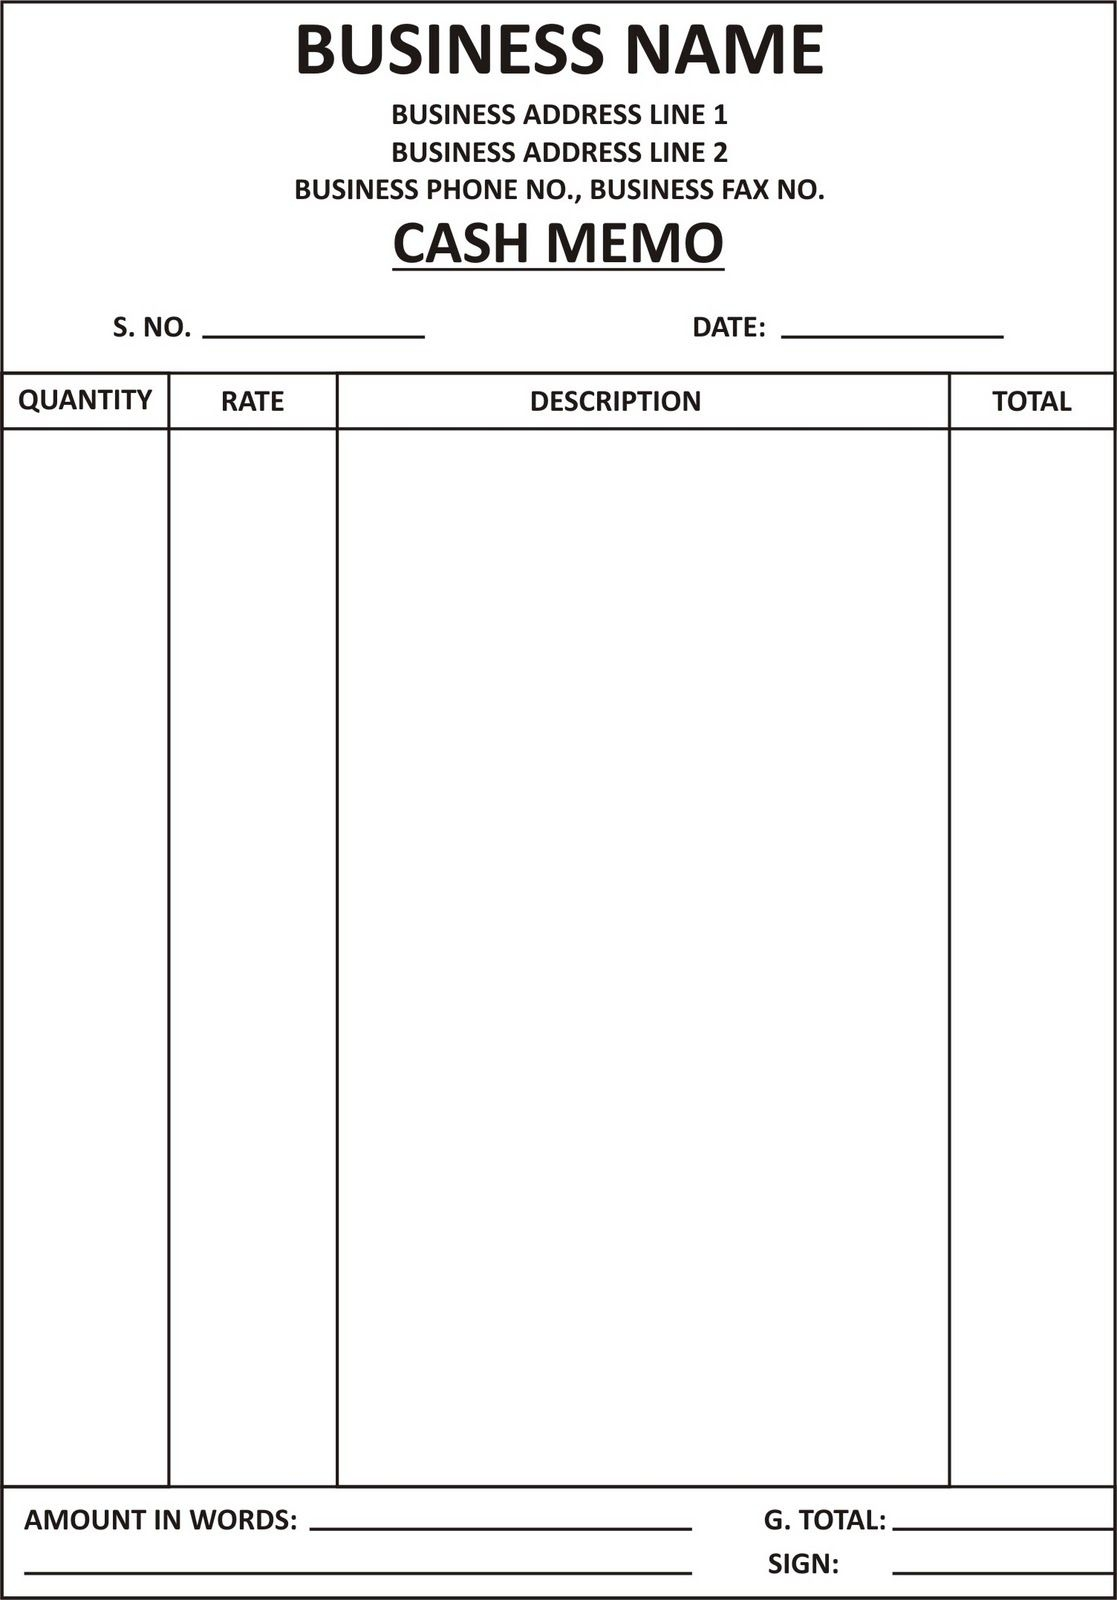 cash bill format submited images pic 2 fly invoice format cash memo format in word